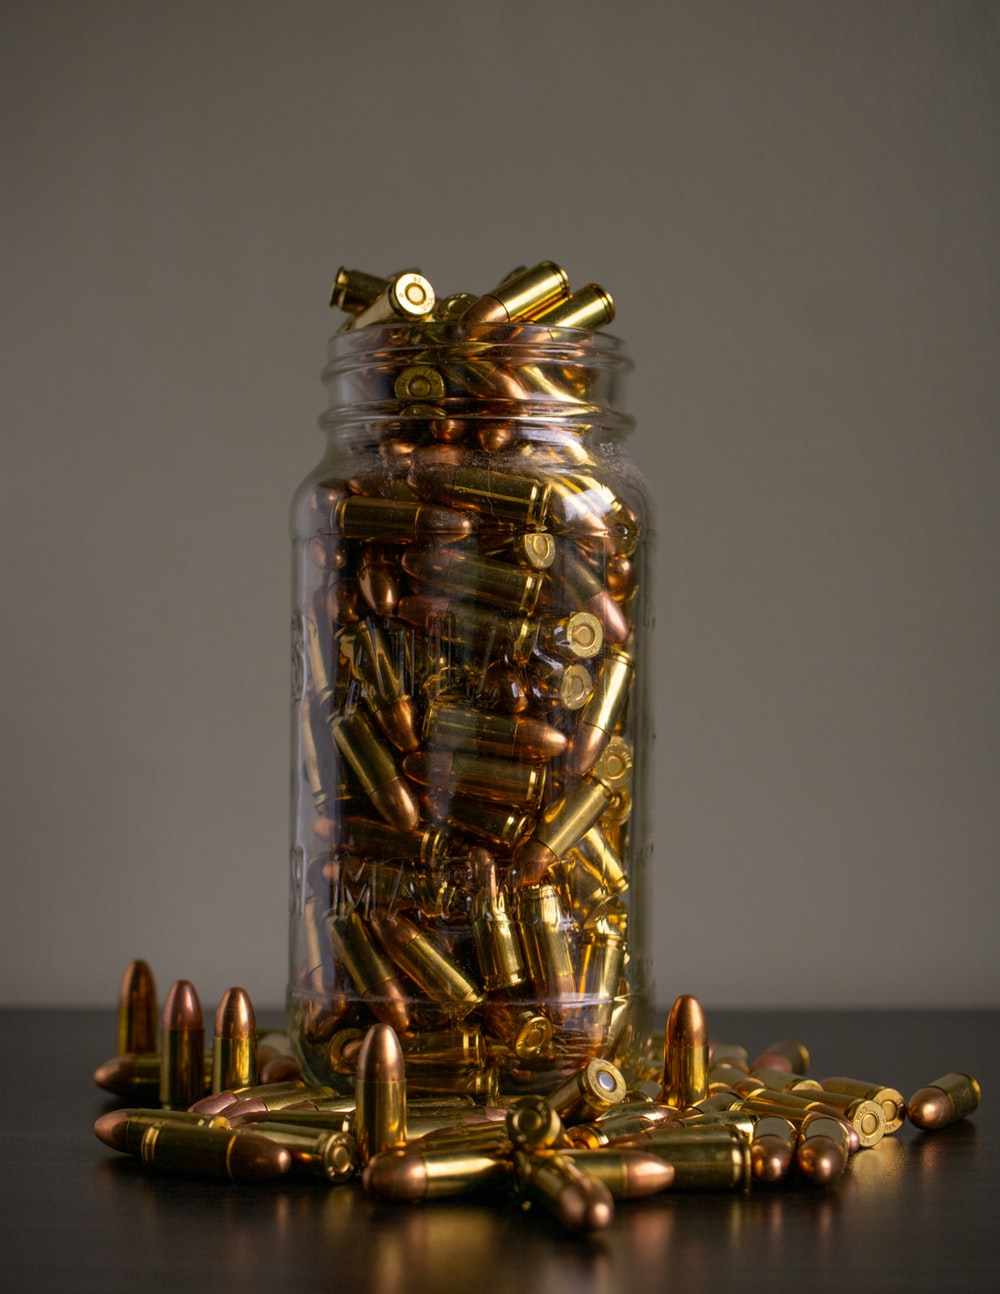 gold and silver coins in clear glass jar